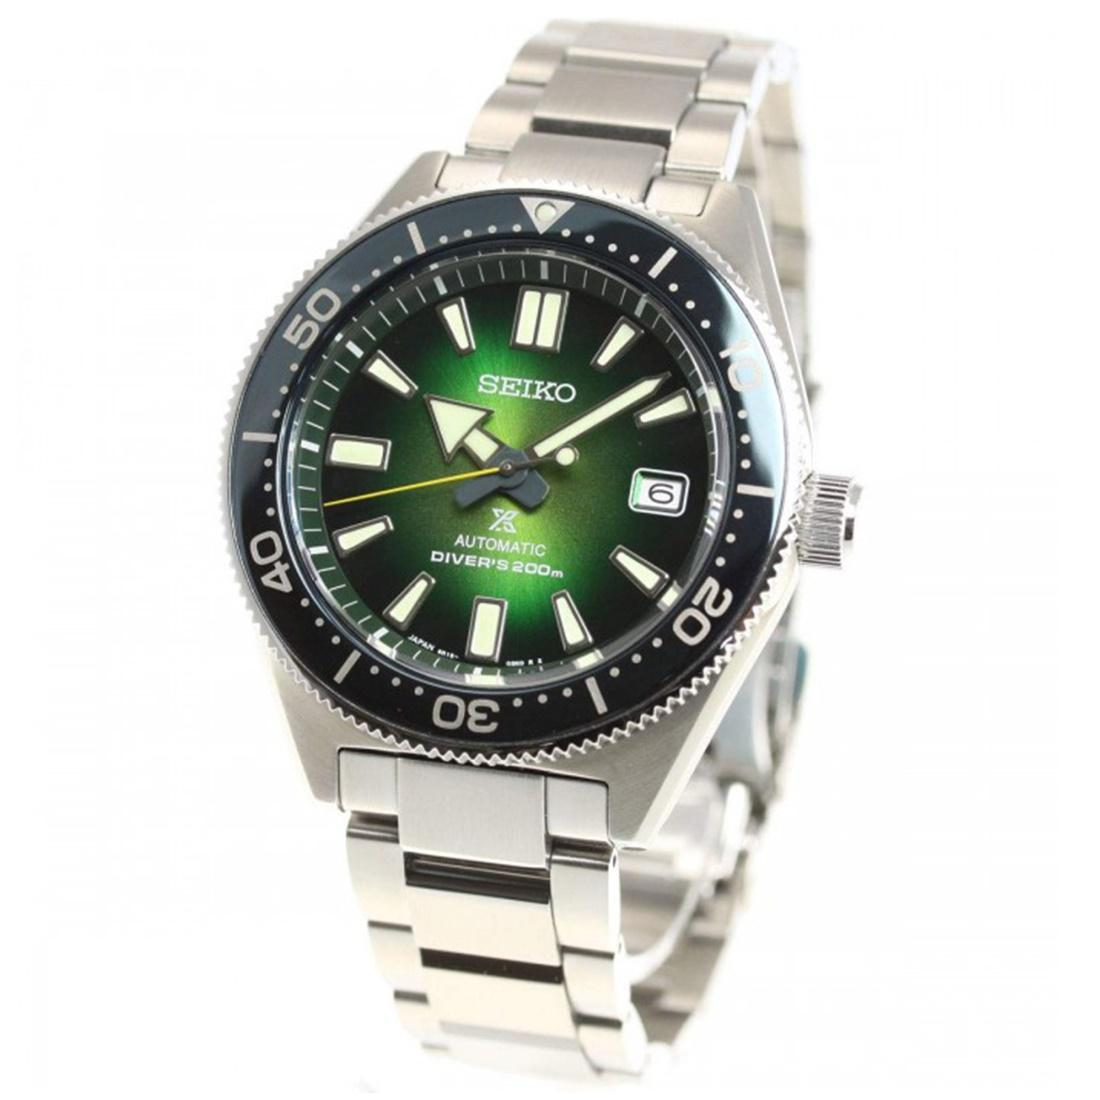 SEIKO PROSPEX AUTOMATIC JDM GREEN DIAL DIVERS SPORTS WATCH SBDC077